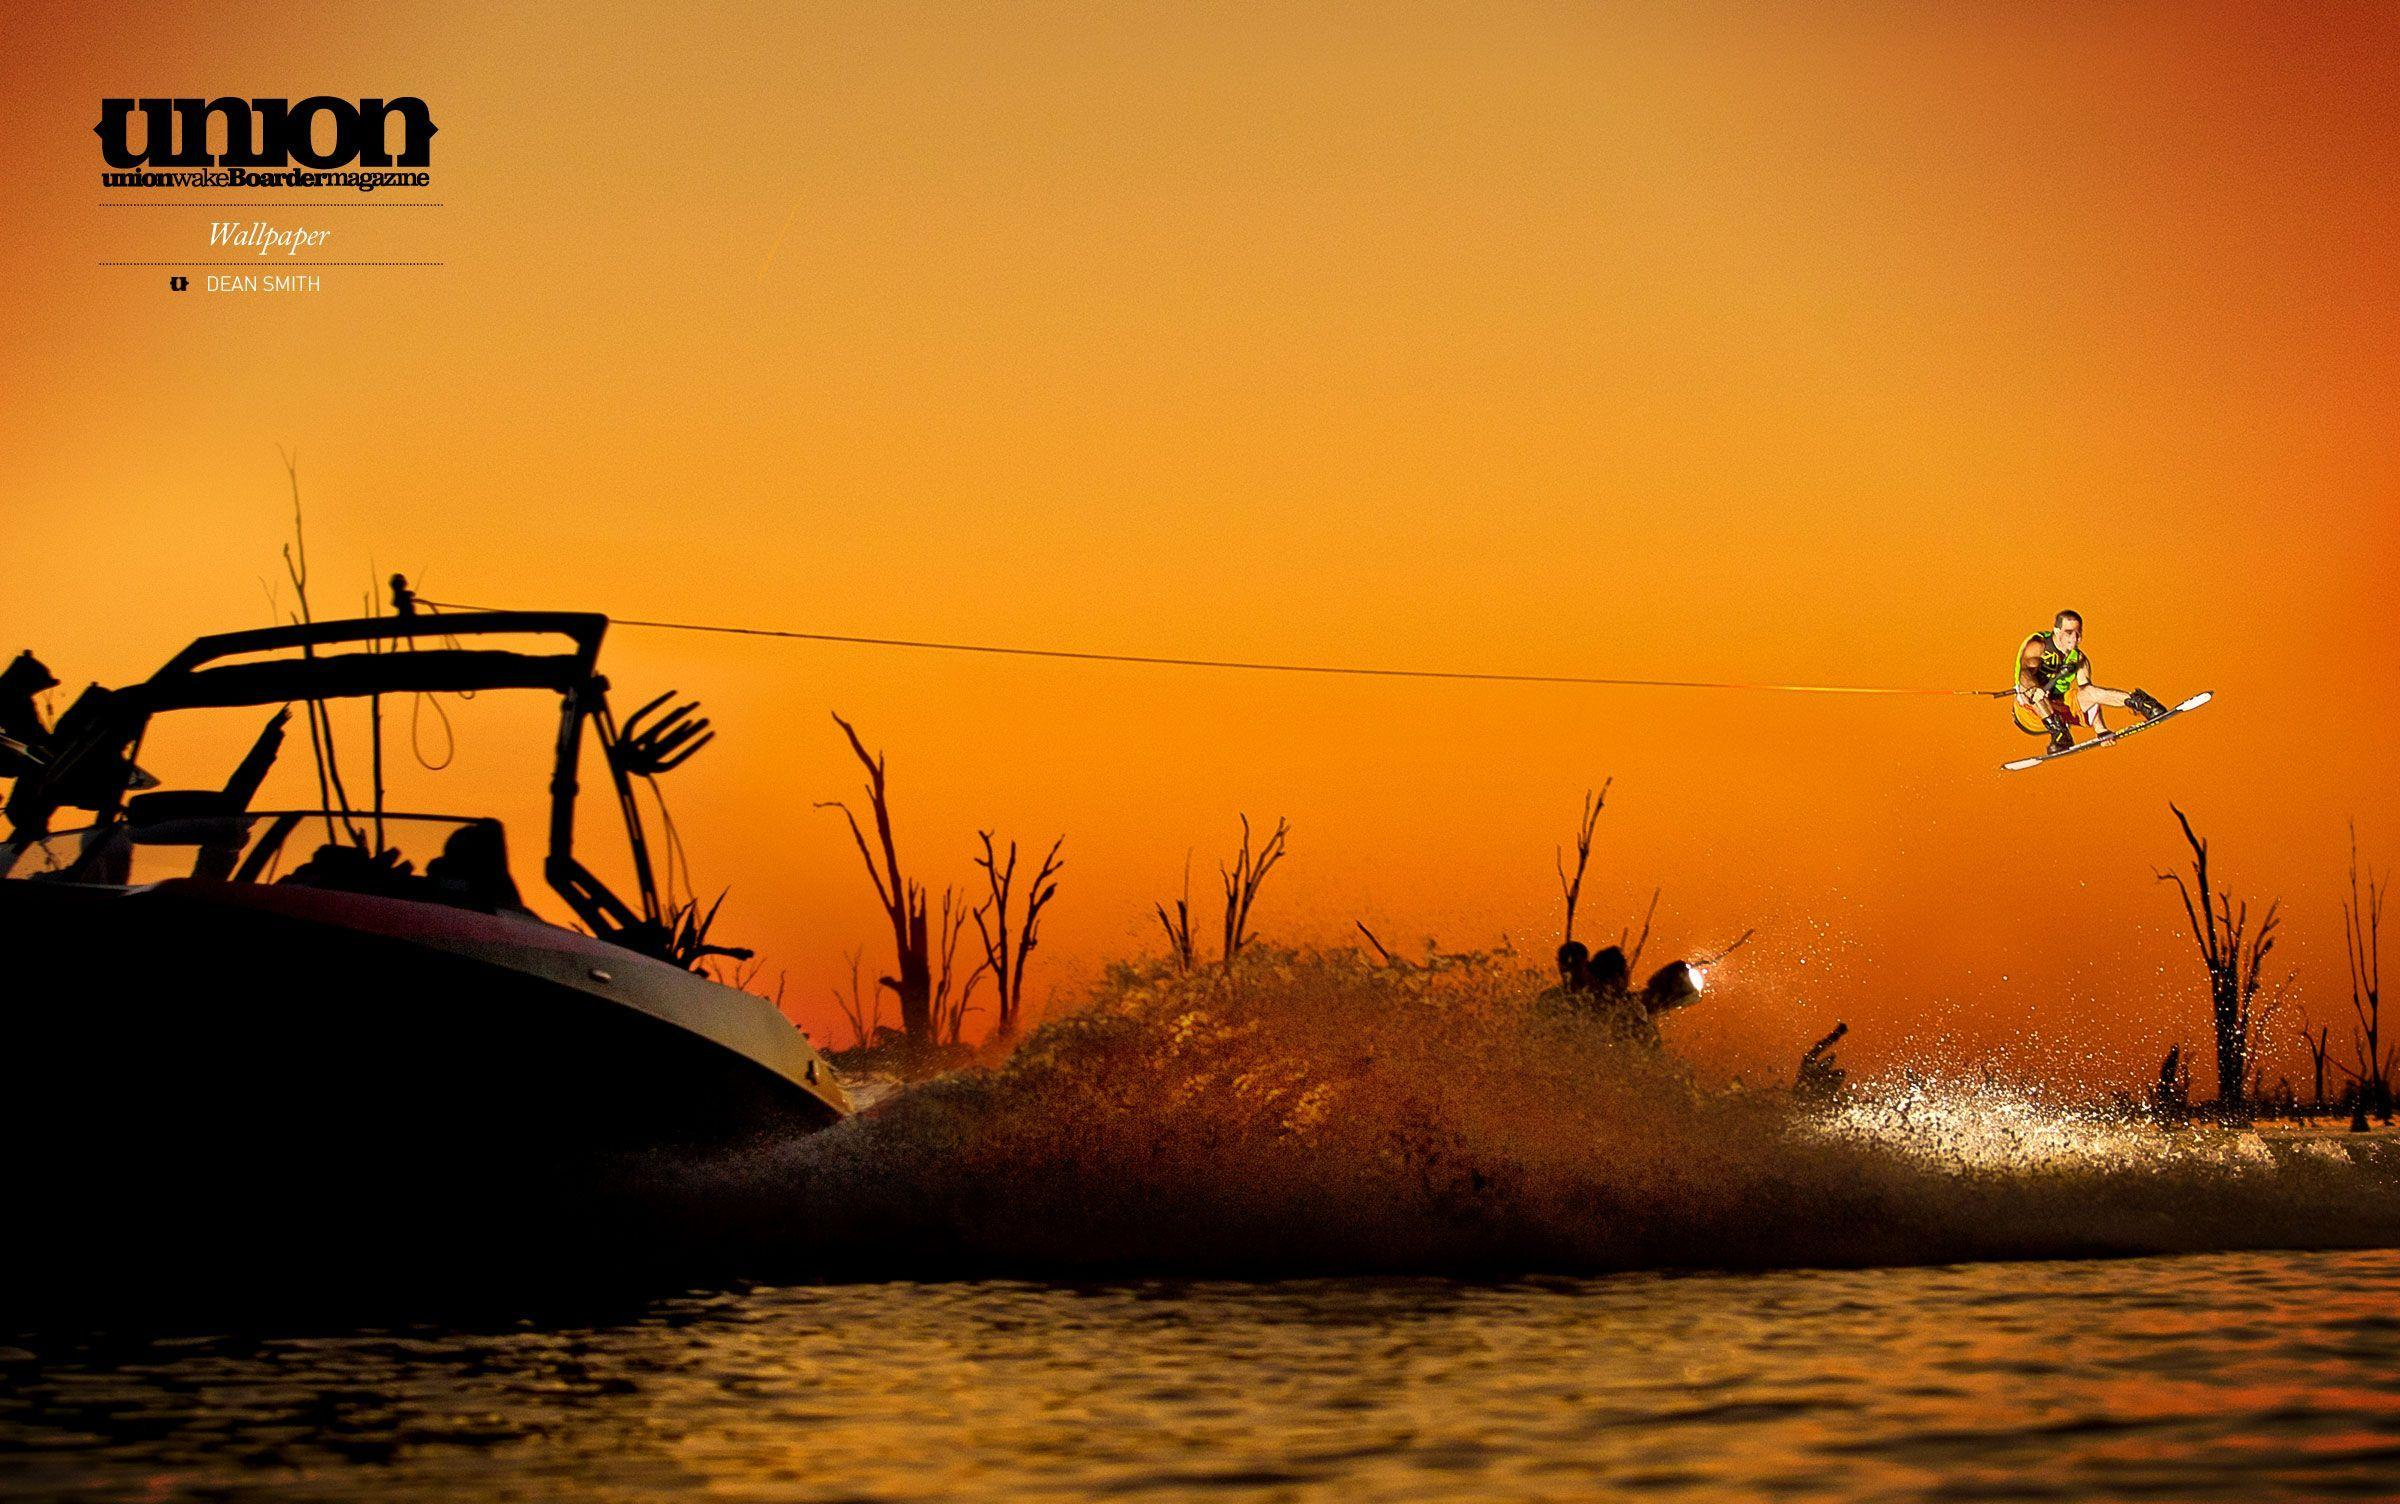 Wallpapers Wakeboarding Magazine Wakeboard pictures 2400×1504